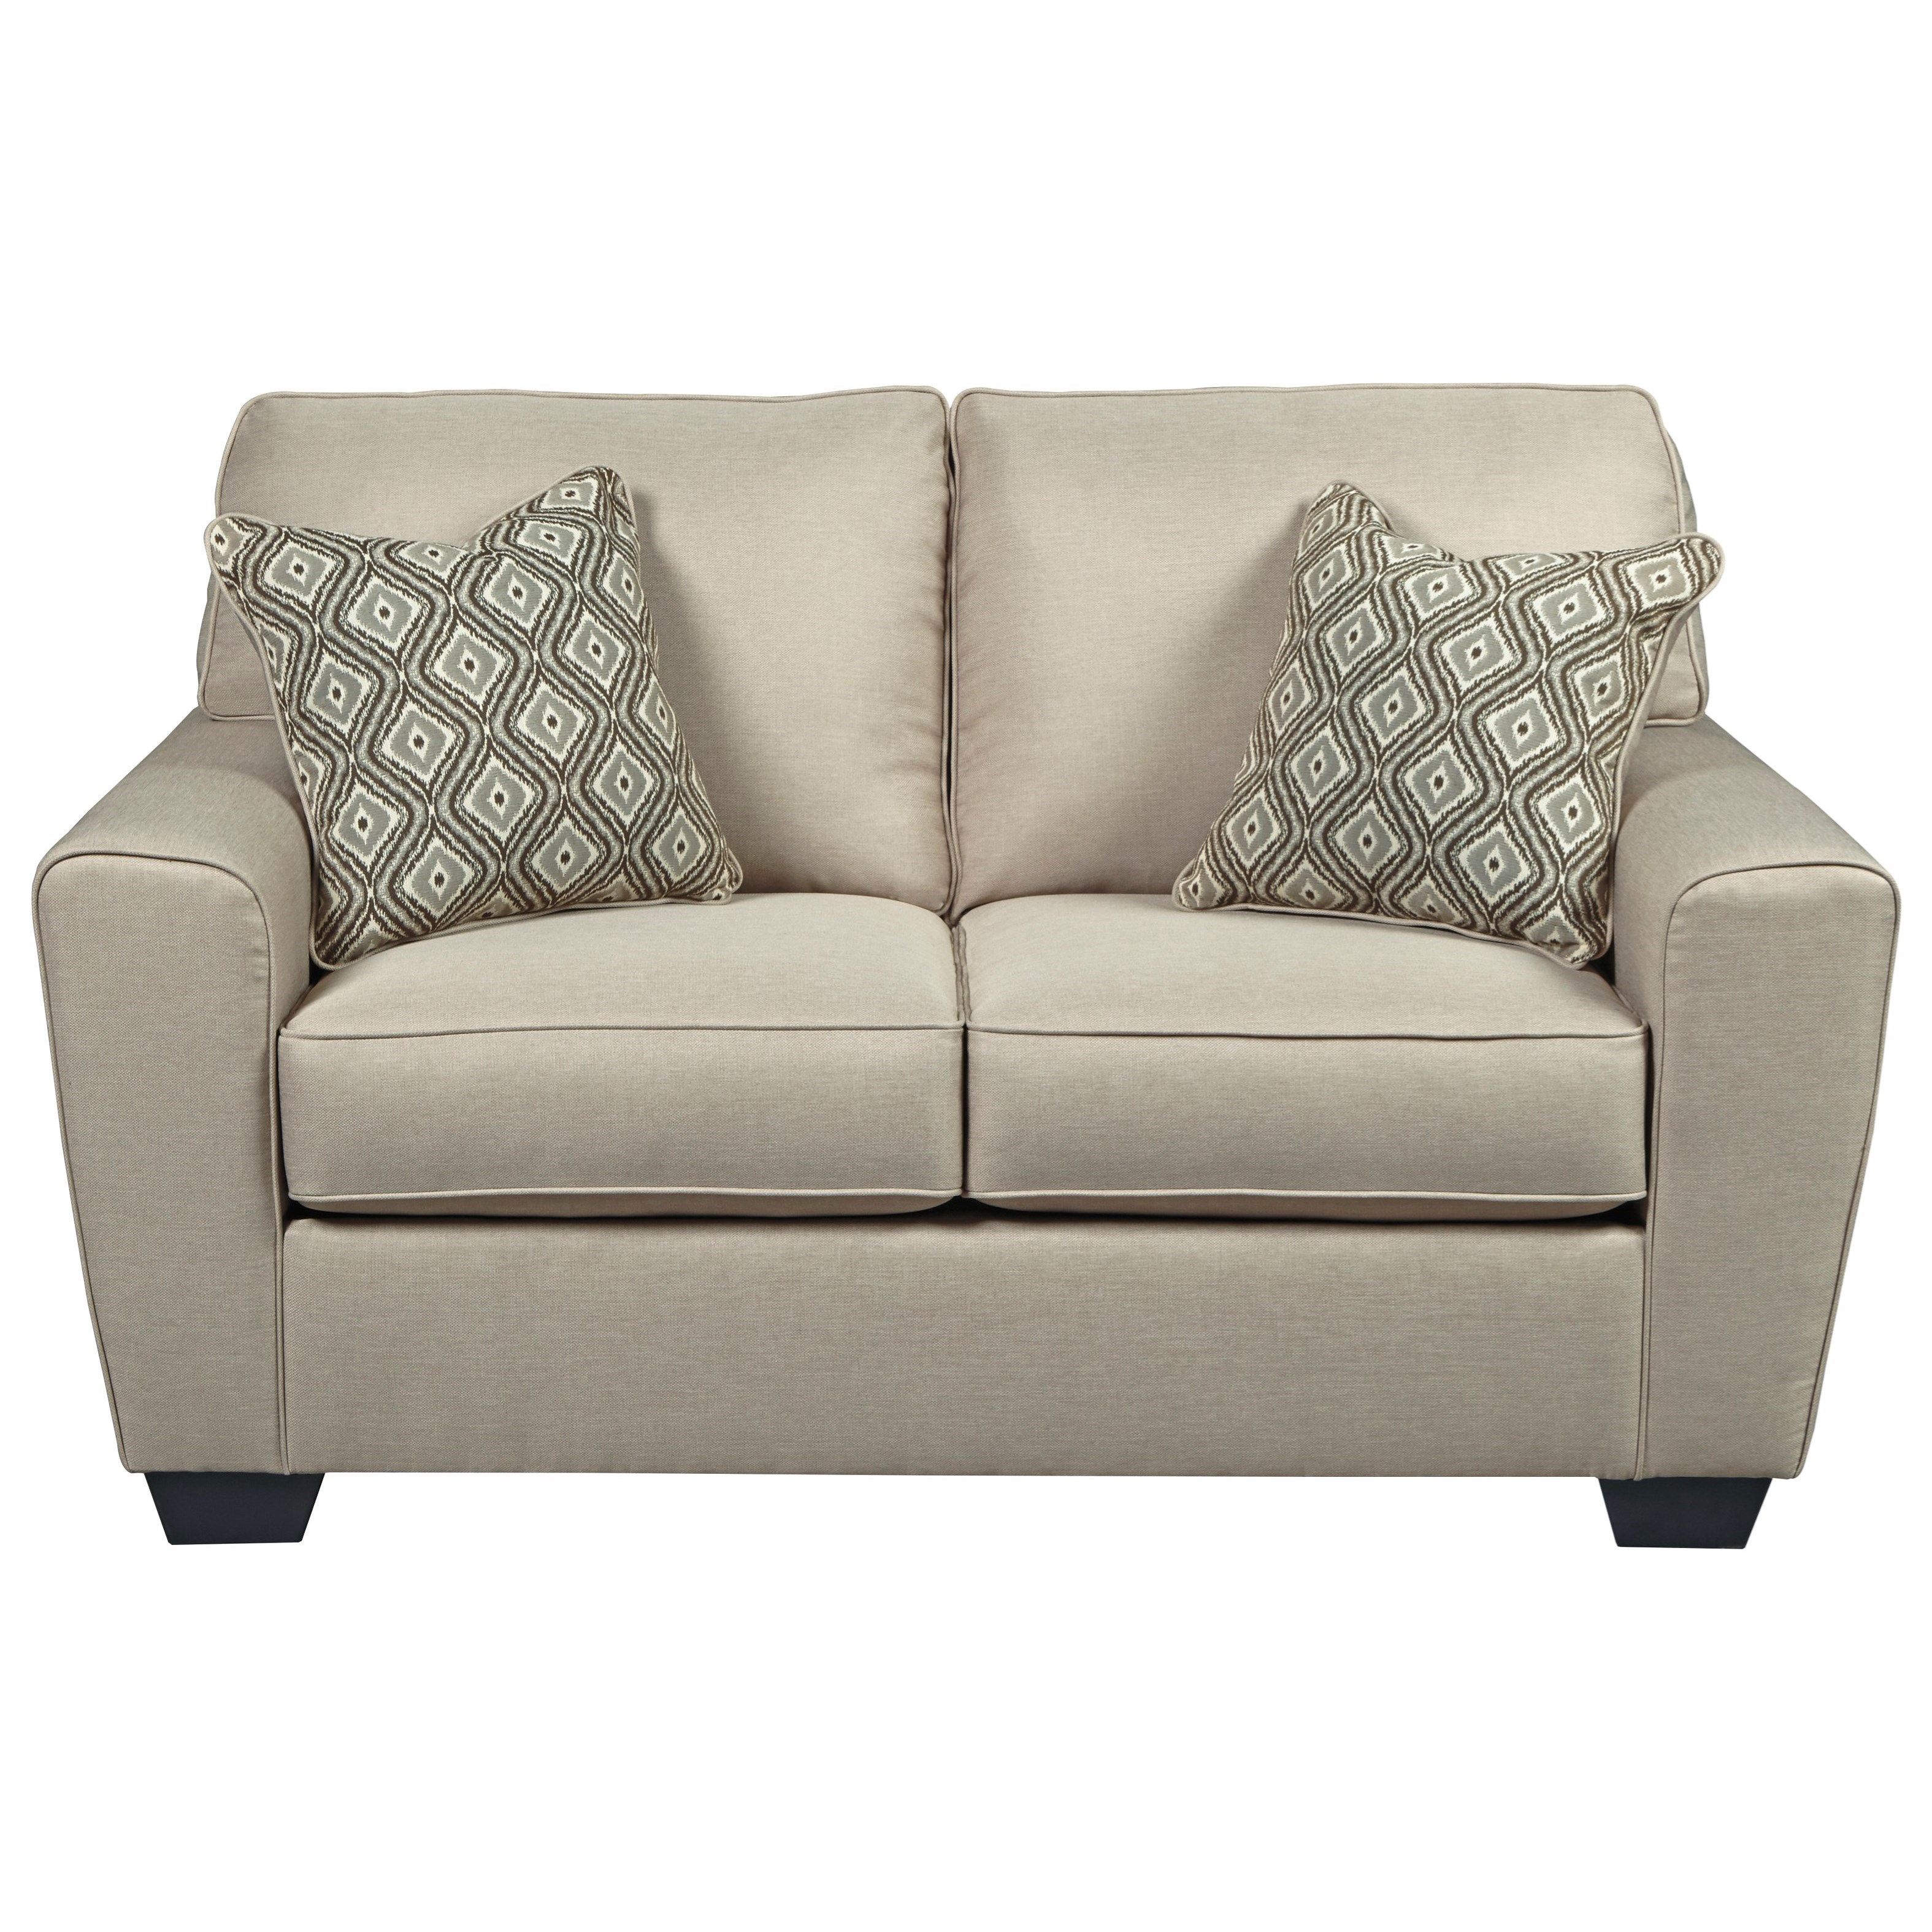 Benchcraft Calicho Loveseat - Item Number: 9120335